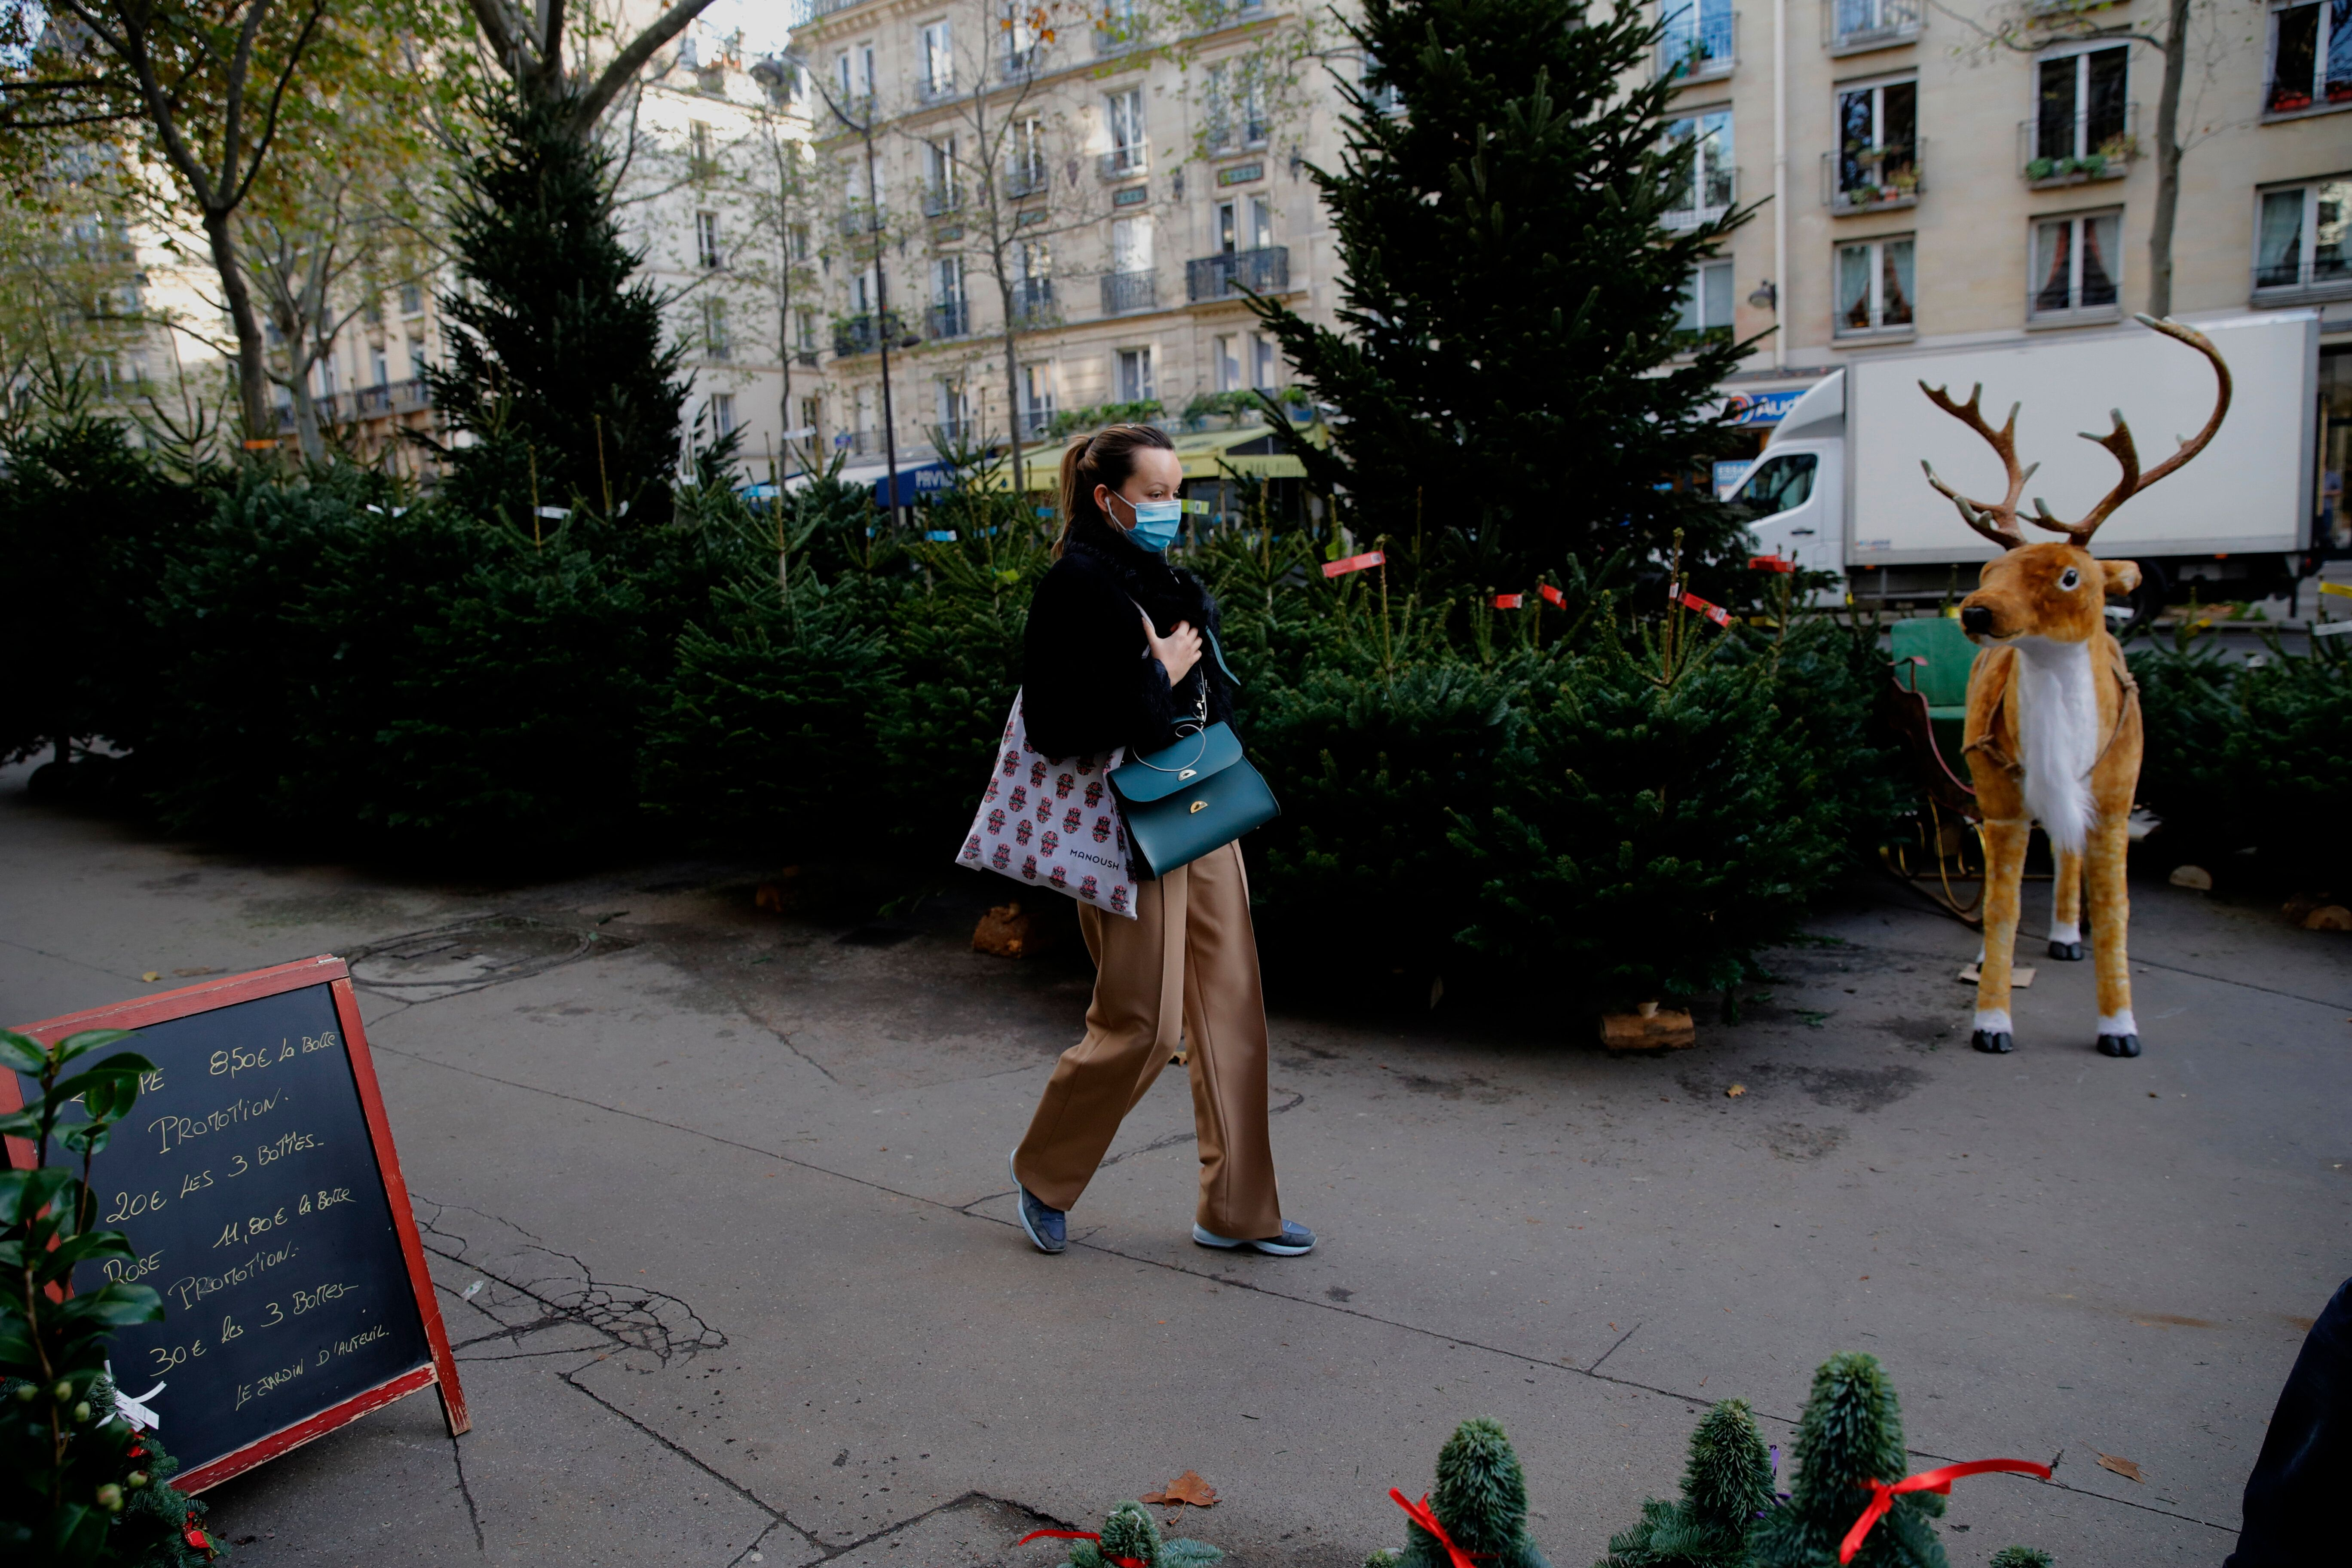 A woman walks past Christmas trees at florist in Paris on Friday. The number of new coronavirus infections in France rose by